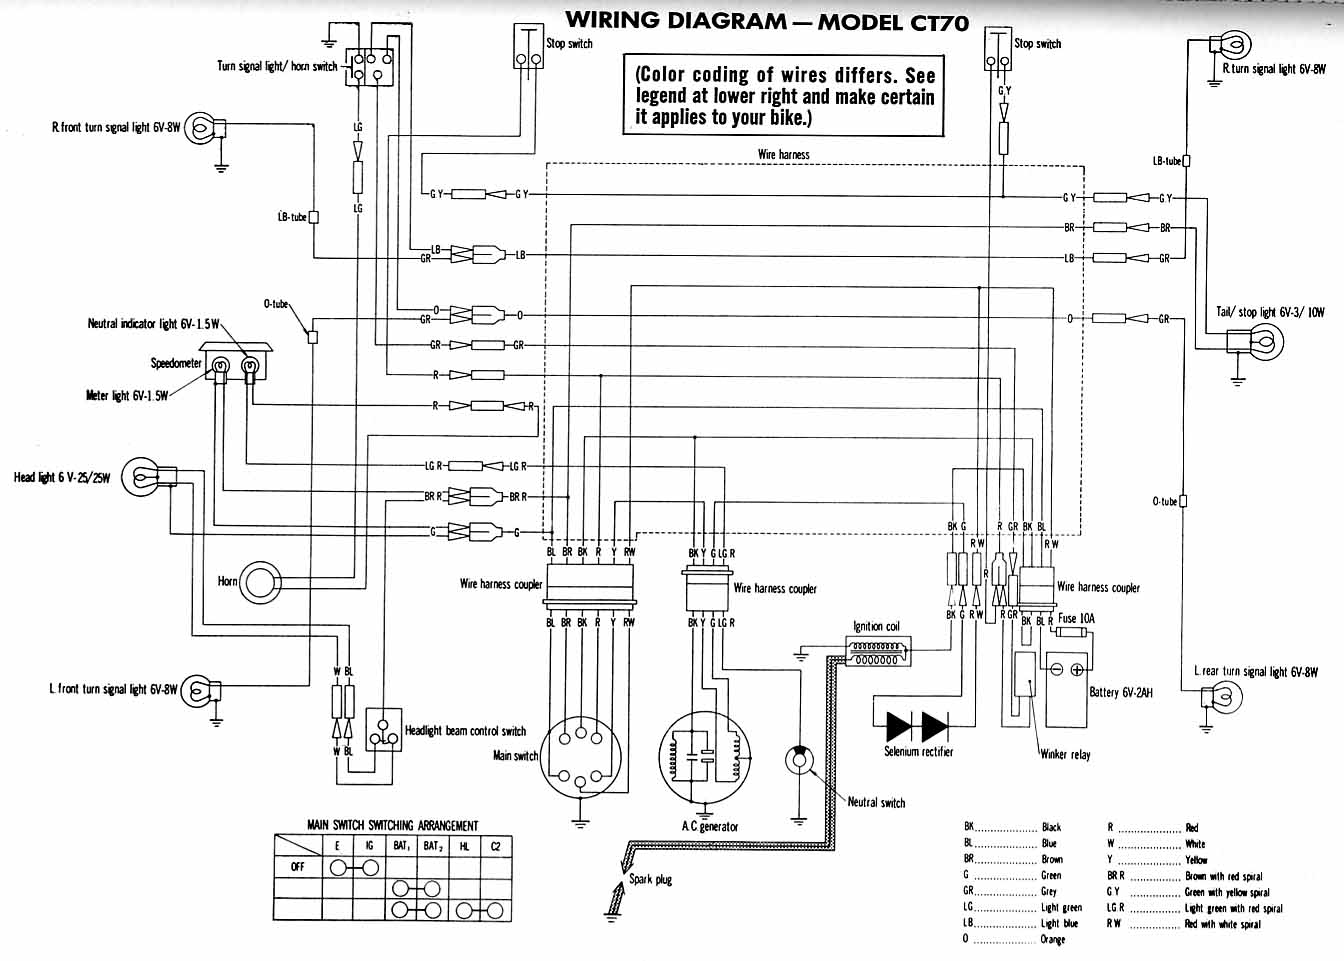 DIAGRAM] Honda Cl72 Wiring Diagram FULL Version HD Quality Wiring Diagram -  DIAGRAMLAND.DSIMOLA.ITDsimola.it